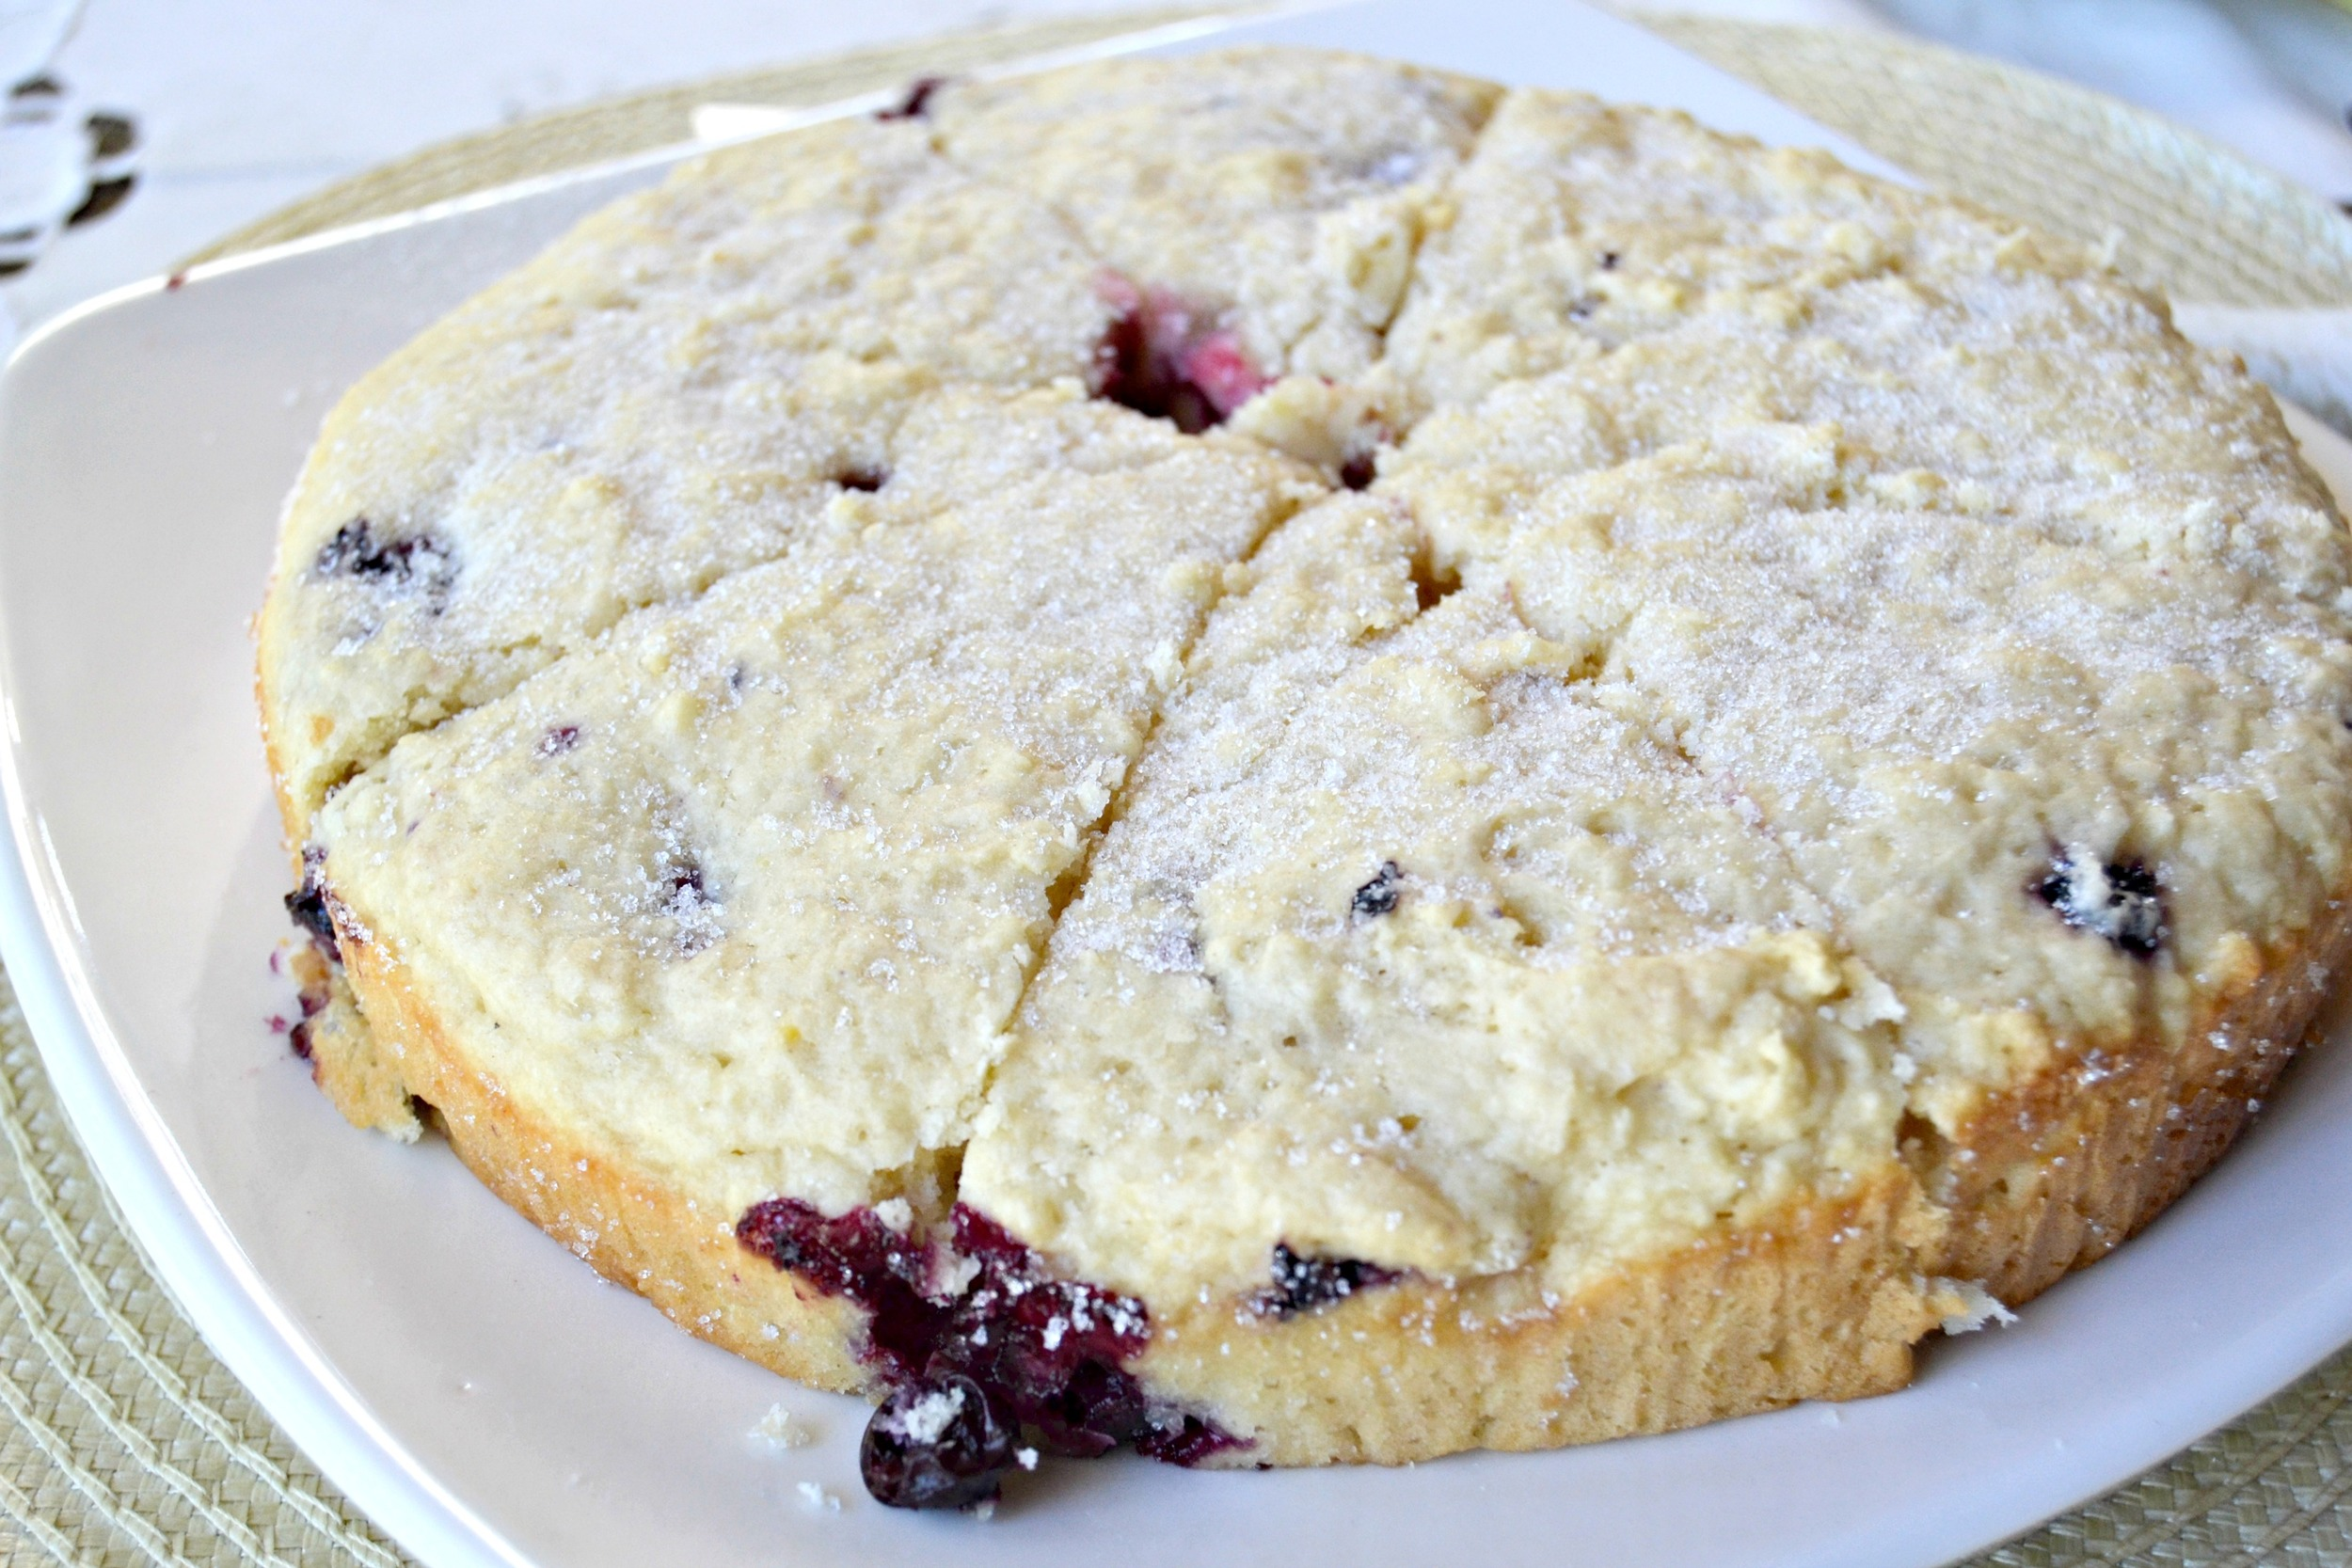 Hot and fresh from the oven, these   Buttermilk Blueberry Scones  will warm up even the chilliest of mornings.